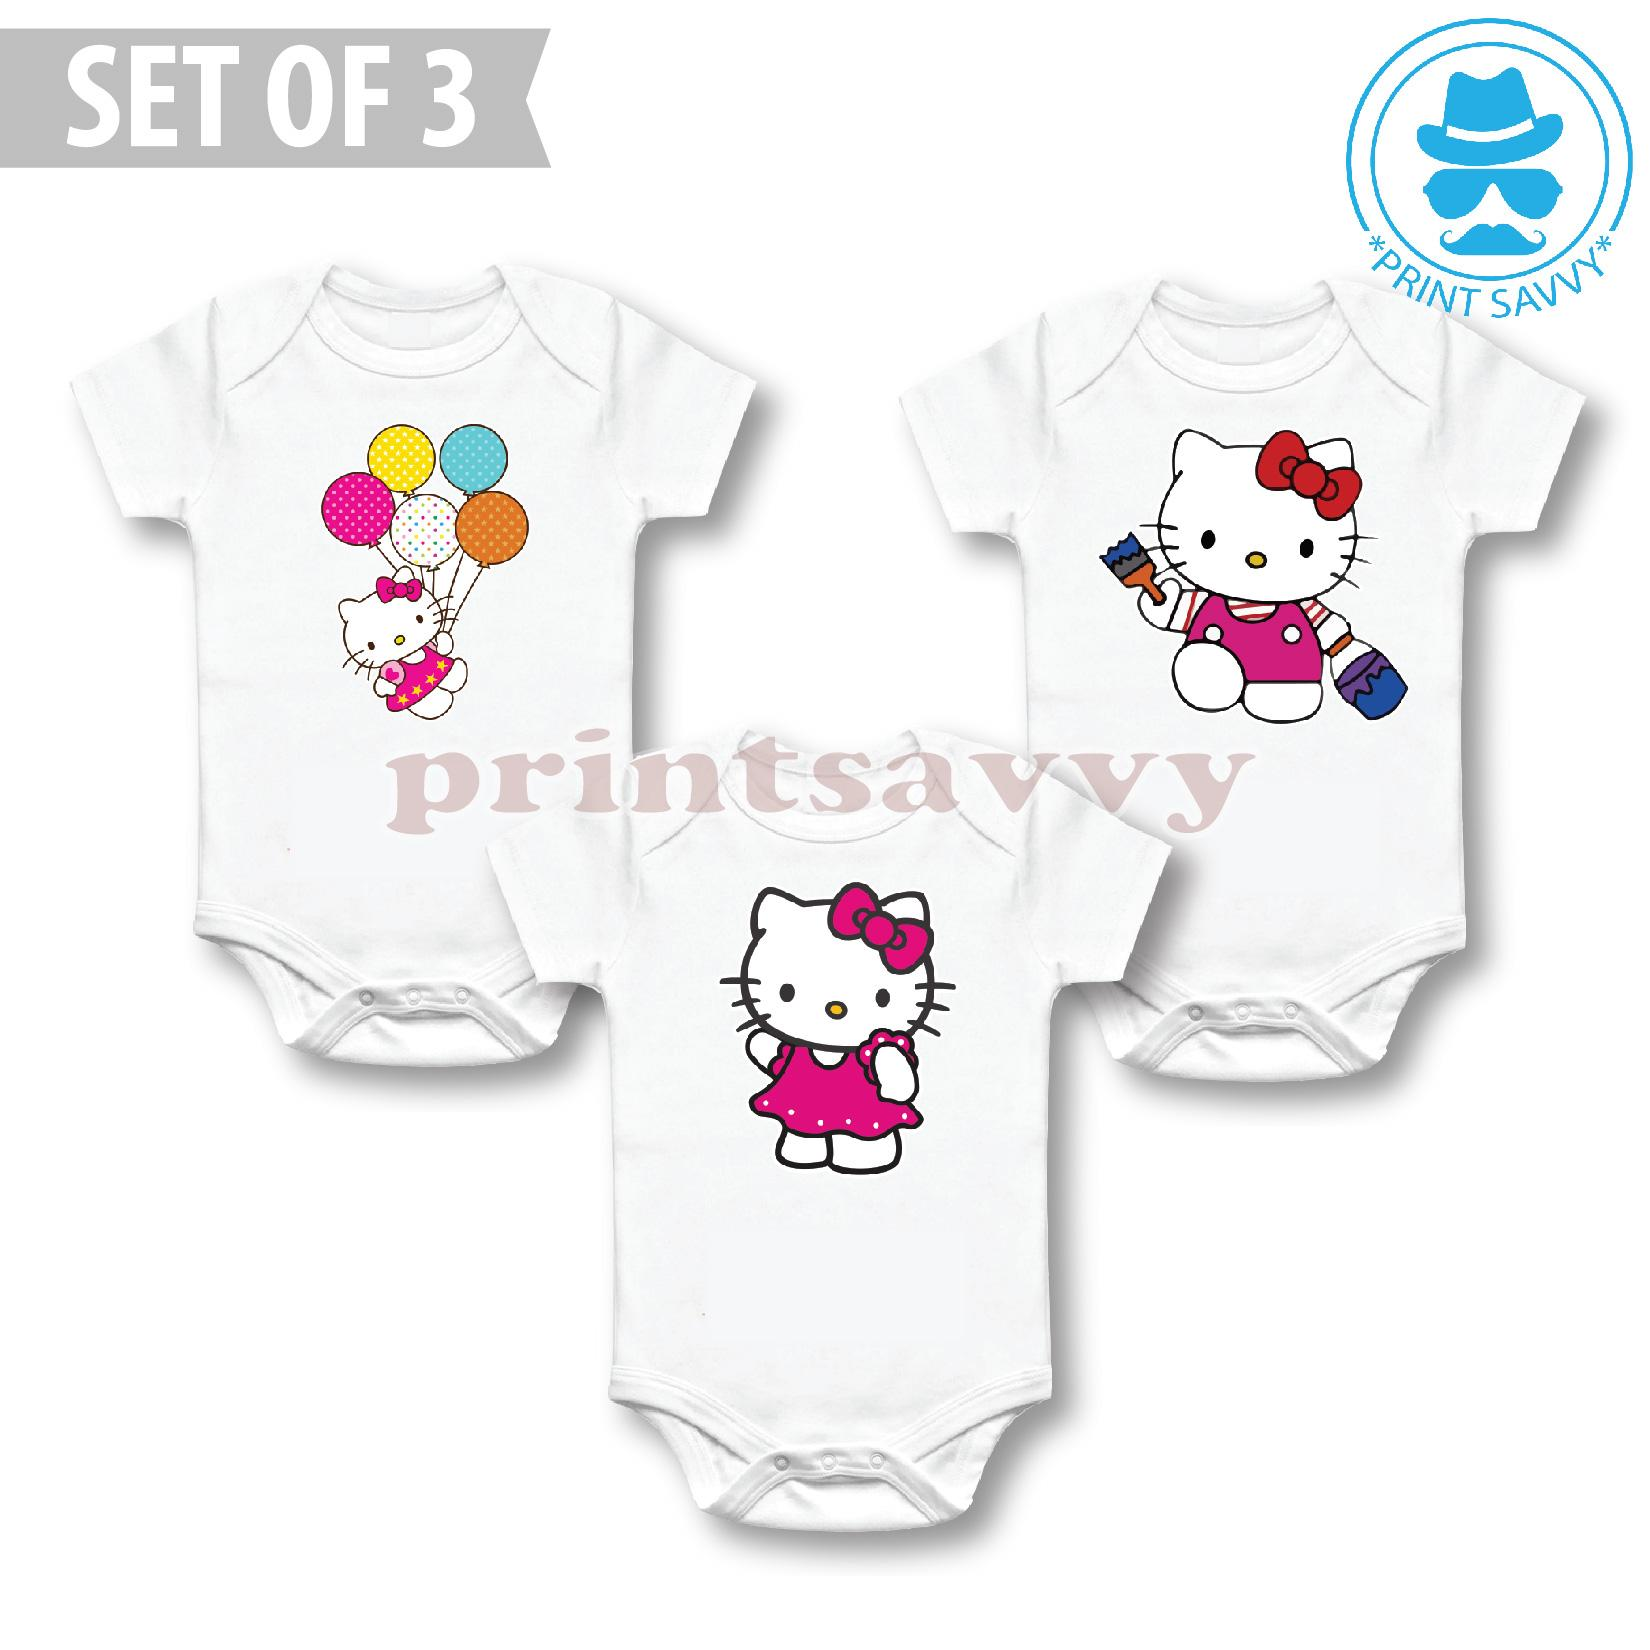 c9b5b15a0 COS #3: SET OF 3 Character Baby Onesies - Hello Kitty - Matching Newborn